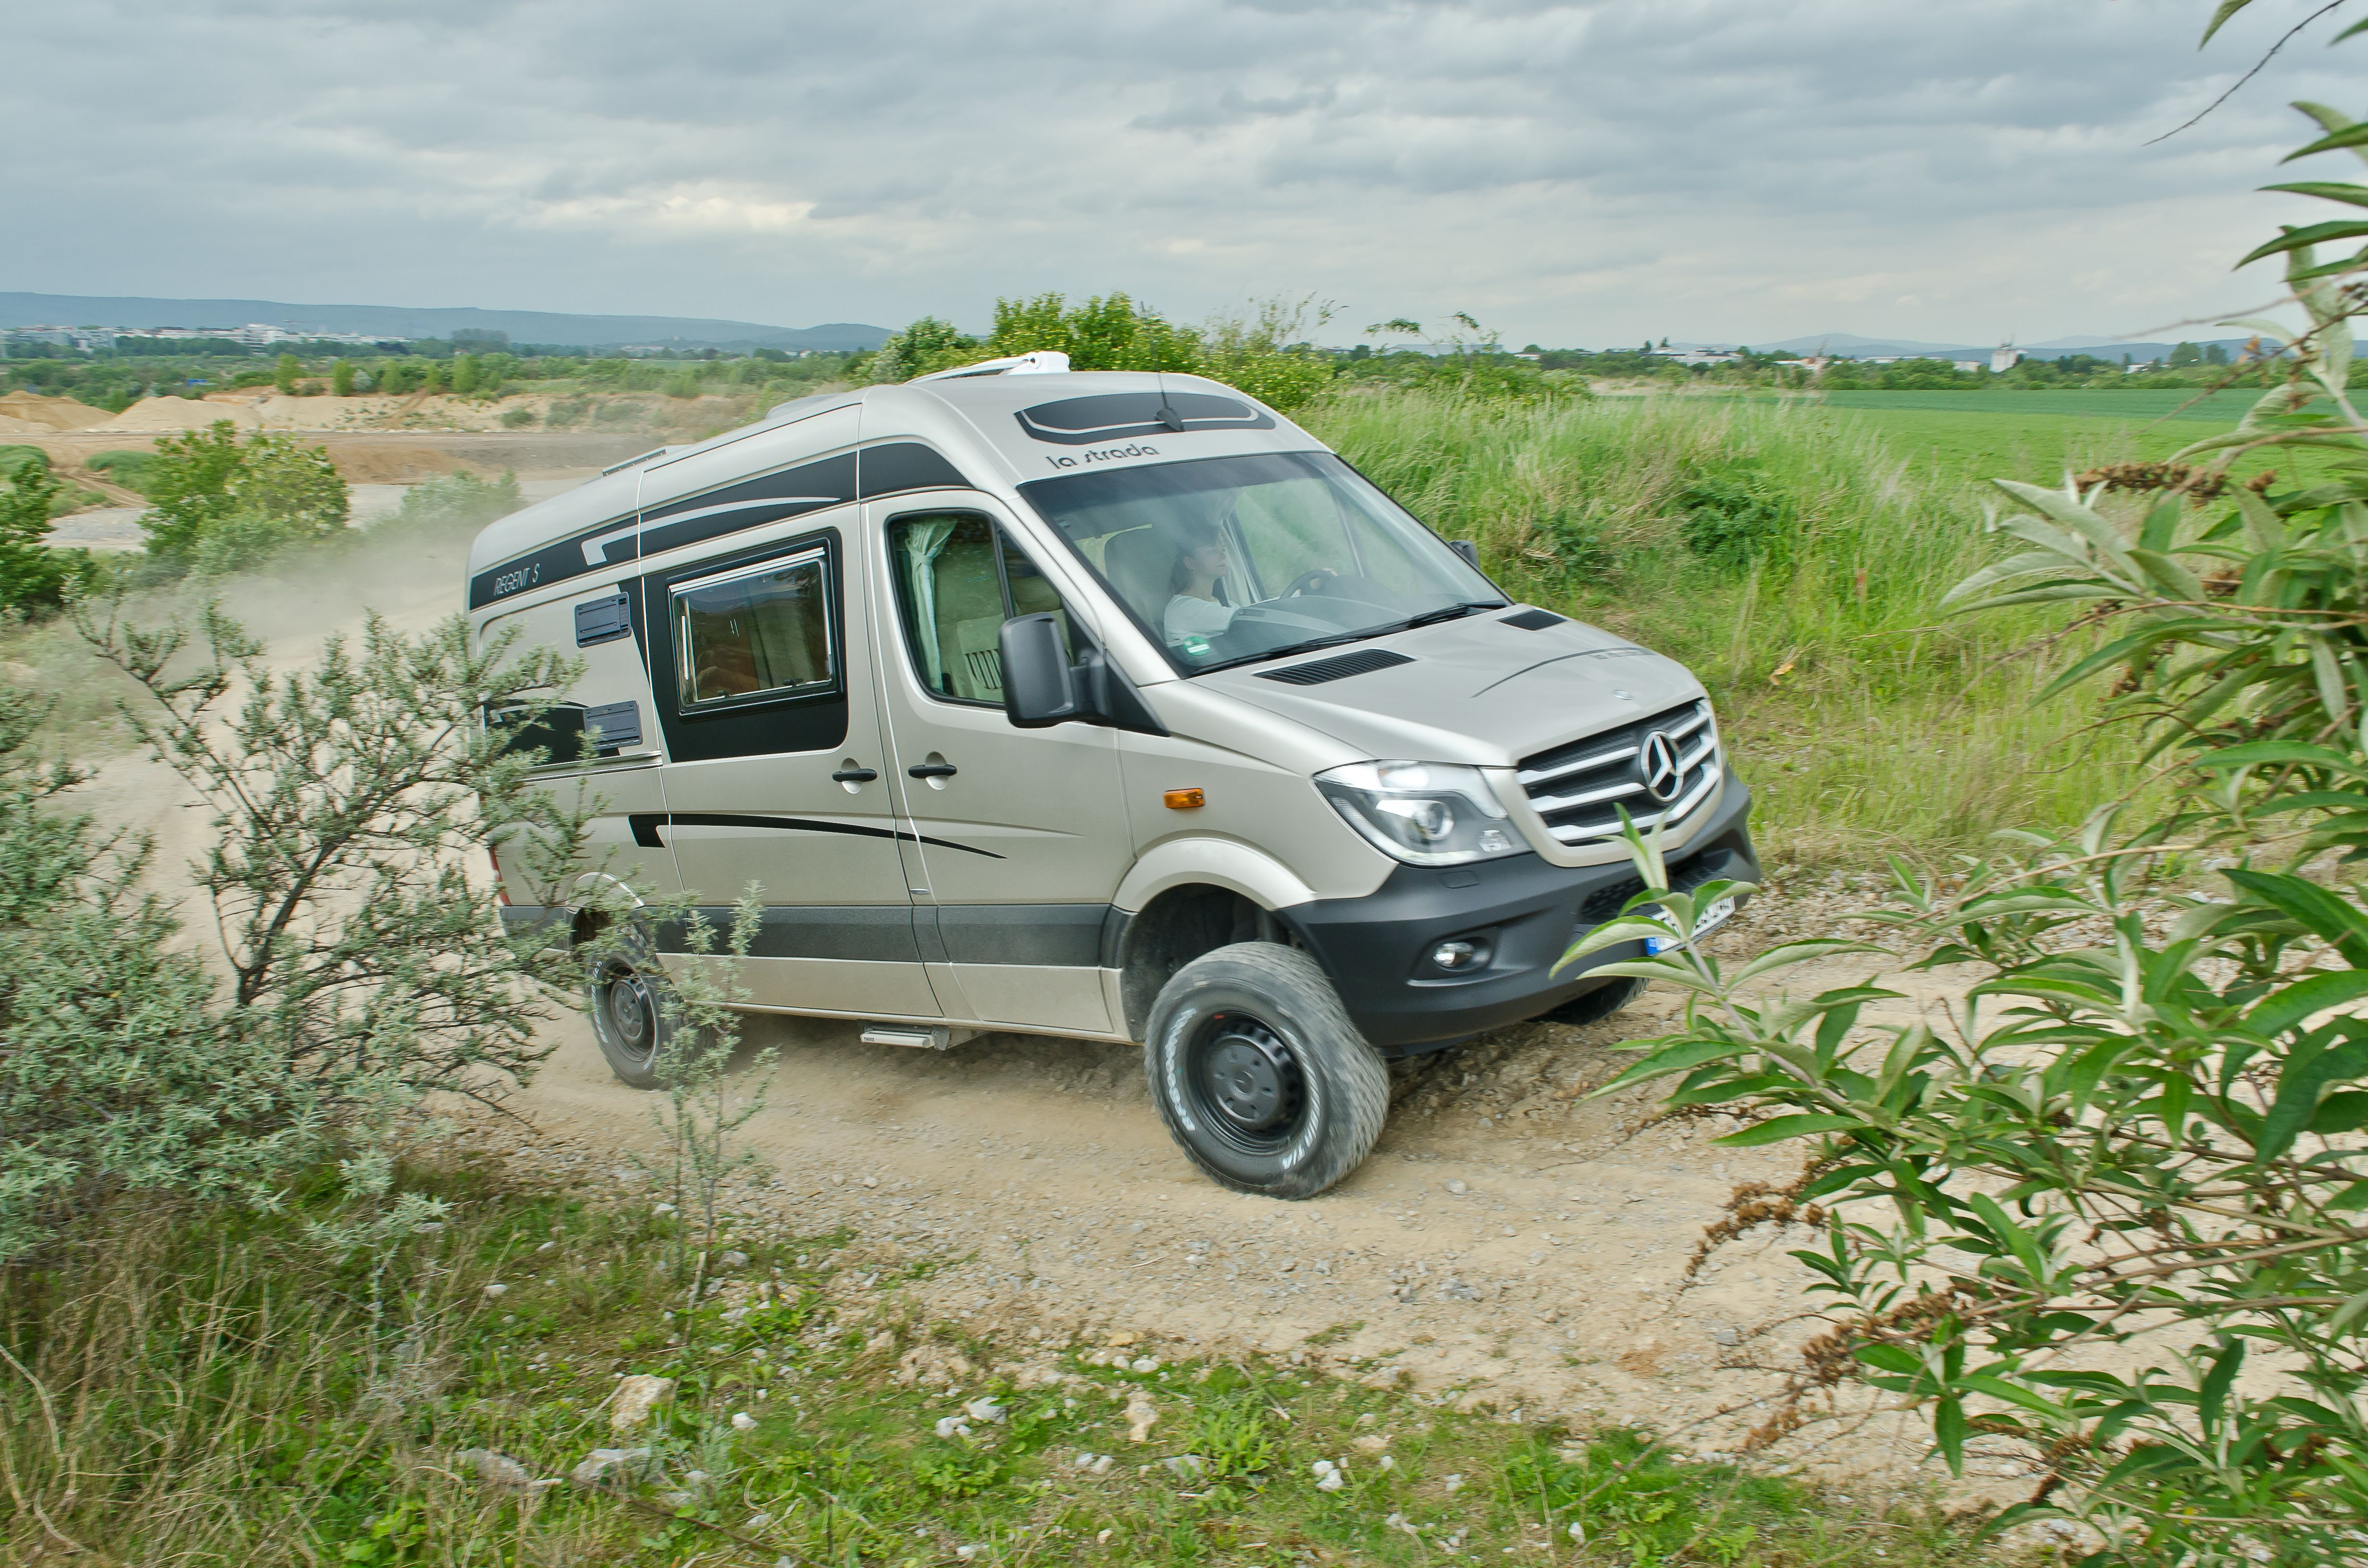 la strada regent s a 4x4 mercedes camper motorhome full time wheels o o pinterest betten. Black Bedroom Furniture Sets. Home Design Ideas